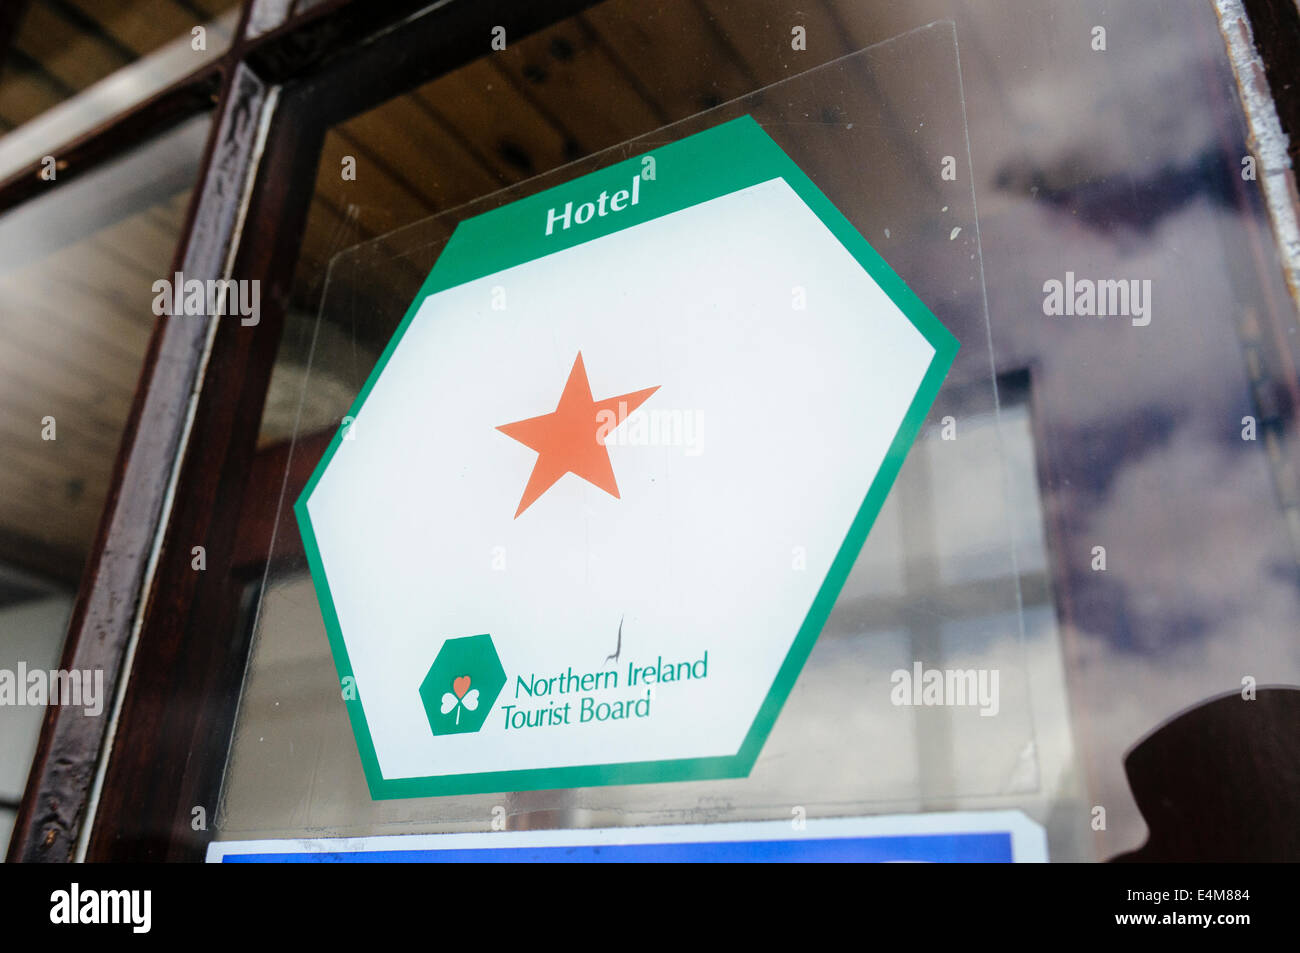 sign on a hotel showing it has been awarded one star rating by the Northern Ireland Tourist Board - Stock Image